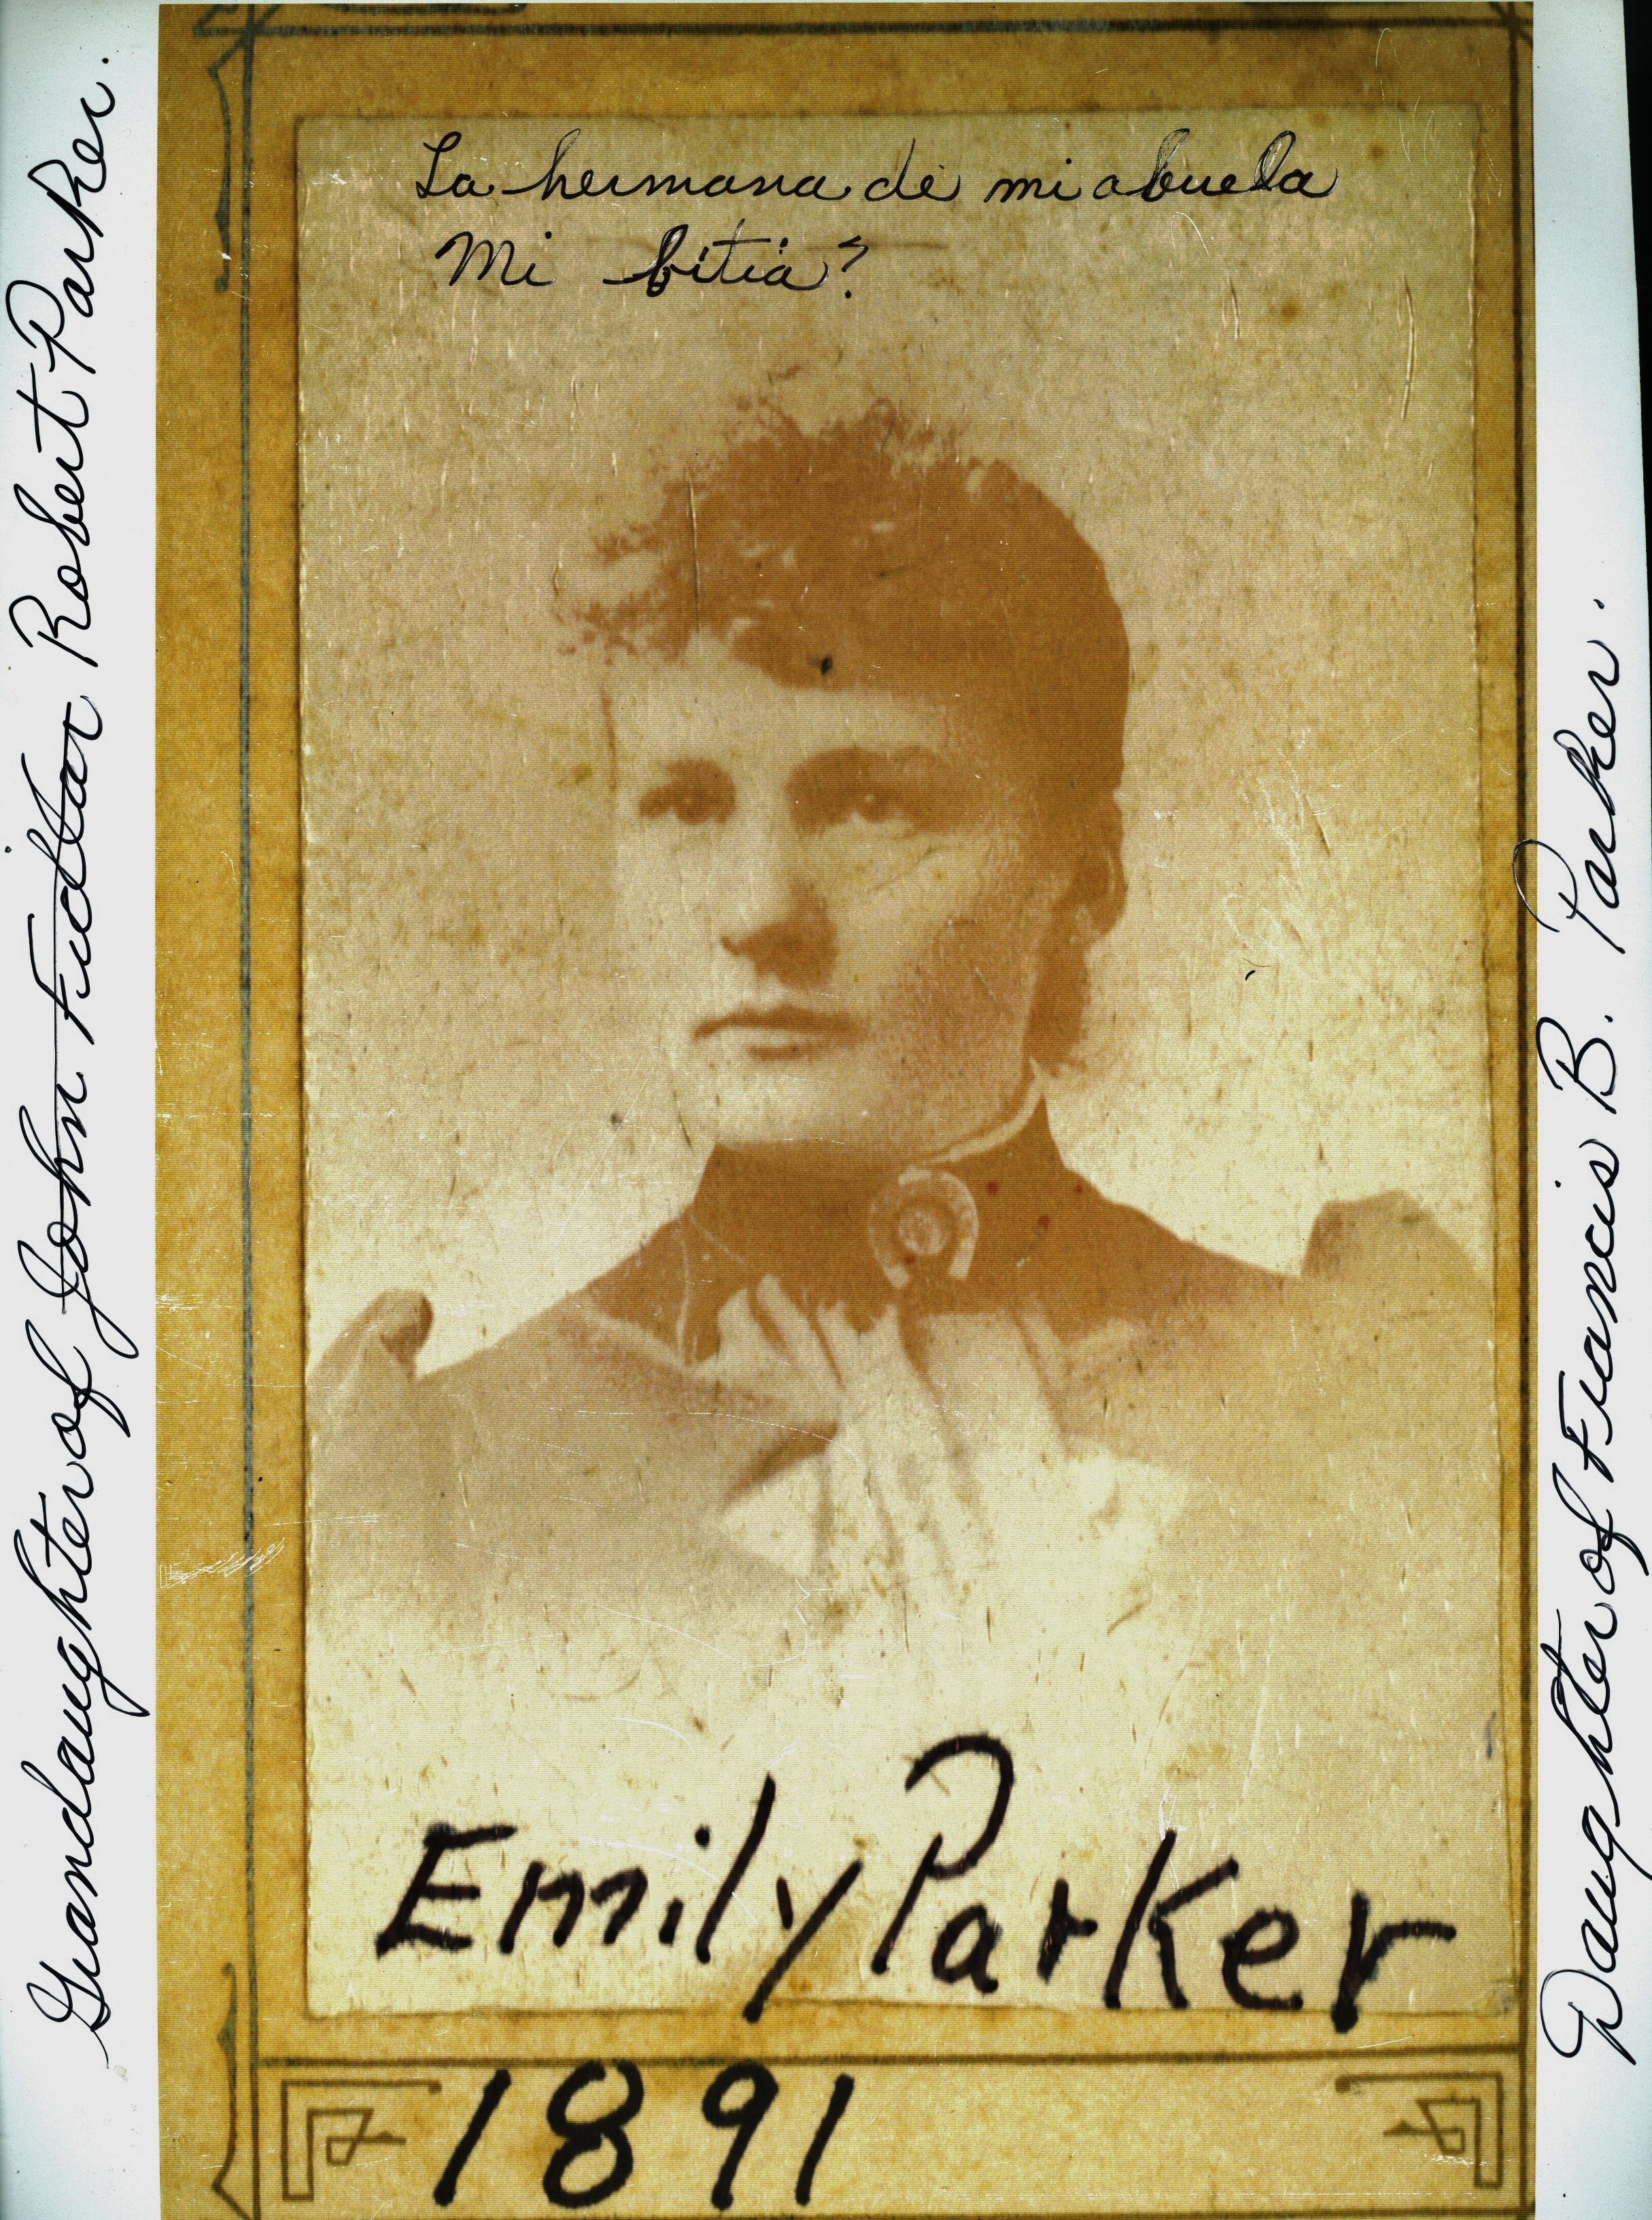 Emily Parker,  accountant,  daughter of  Sarah Fidlar and Francis Parker